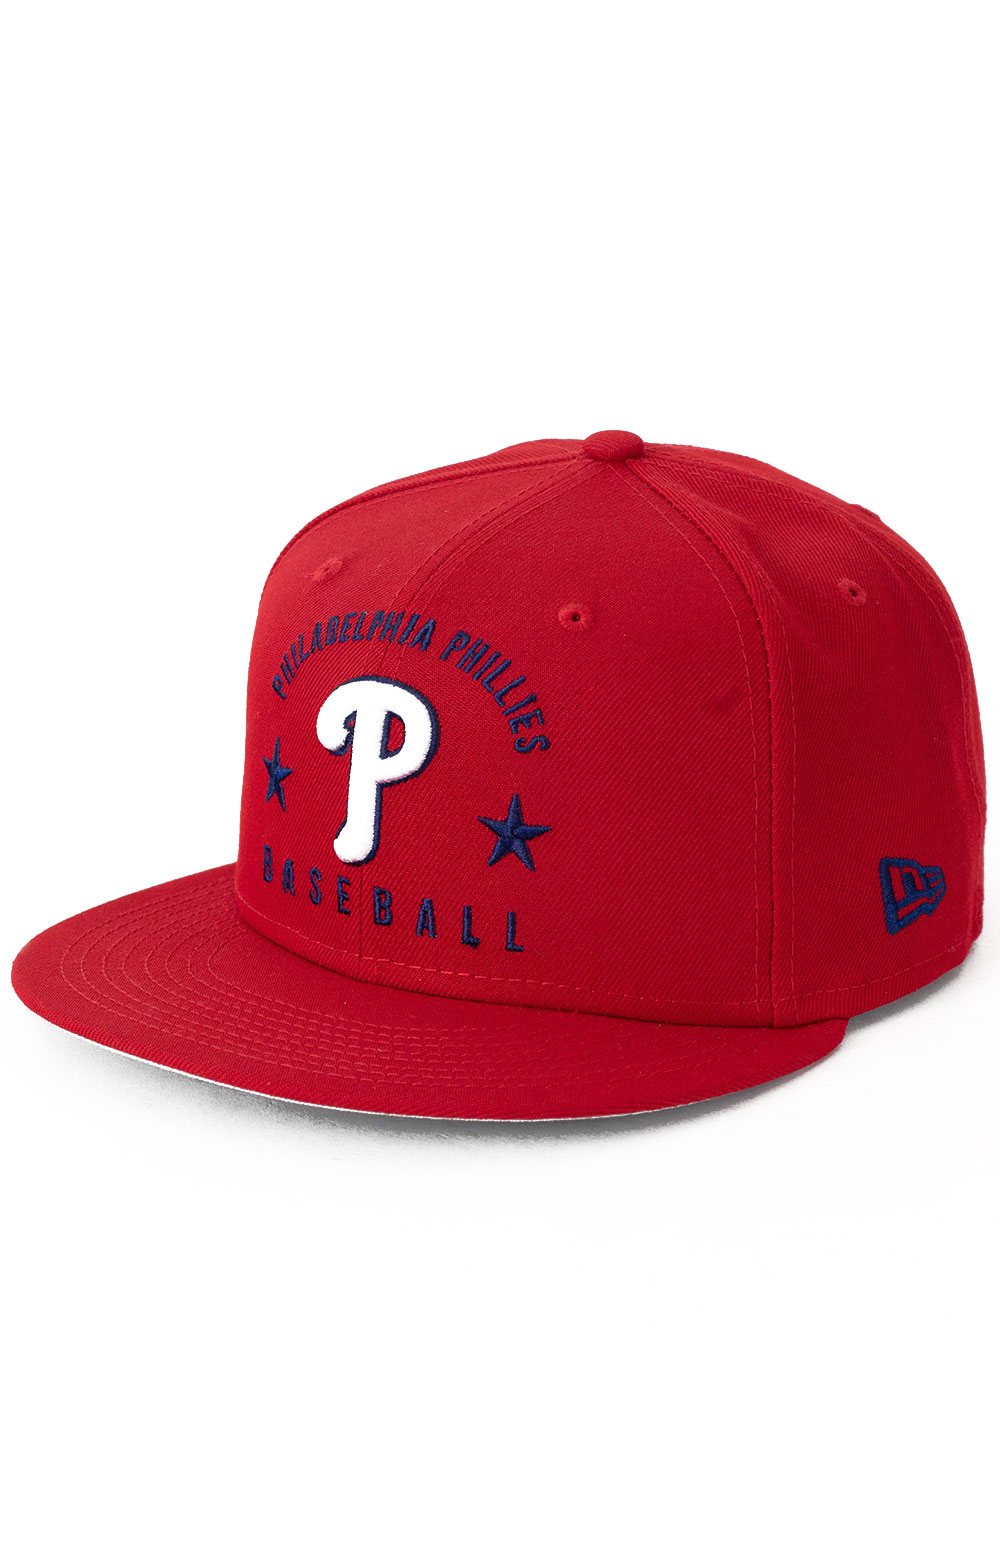 9Fifty Arched Philadelphia Phillies Snap-Back Hat